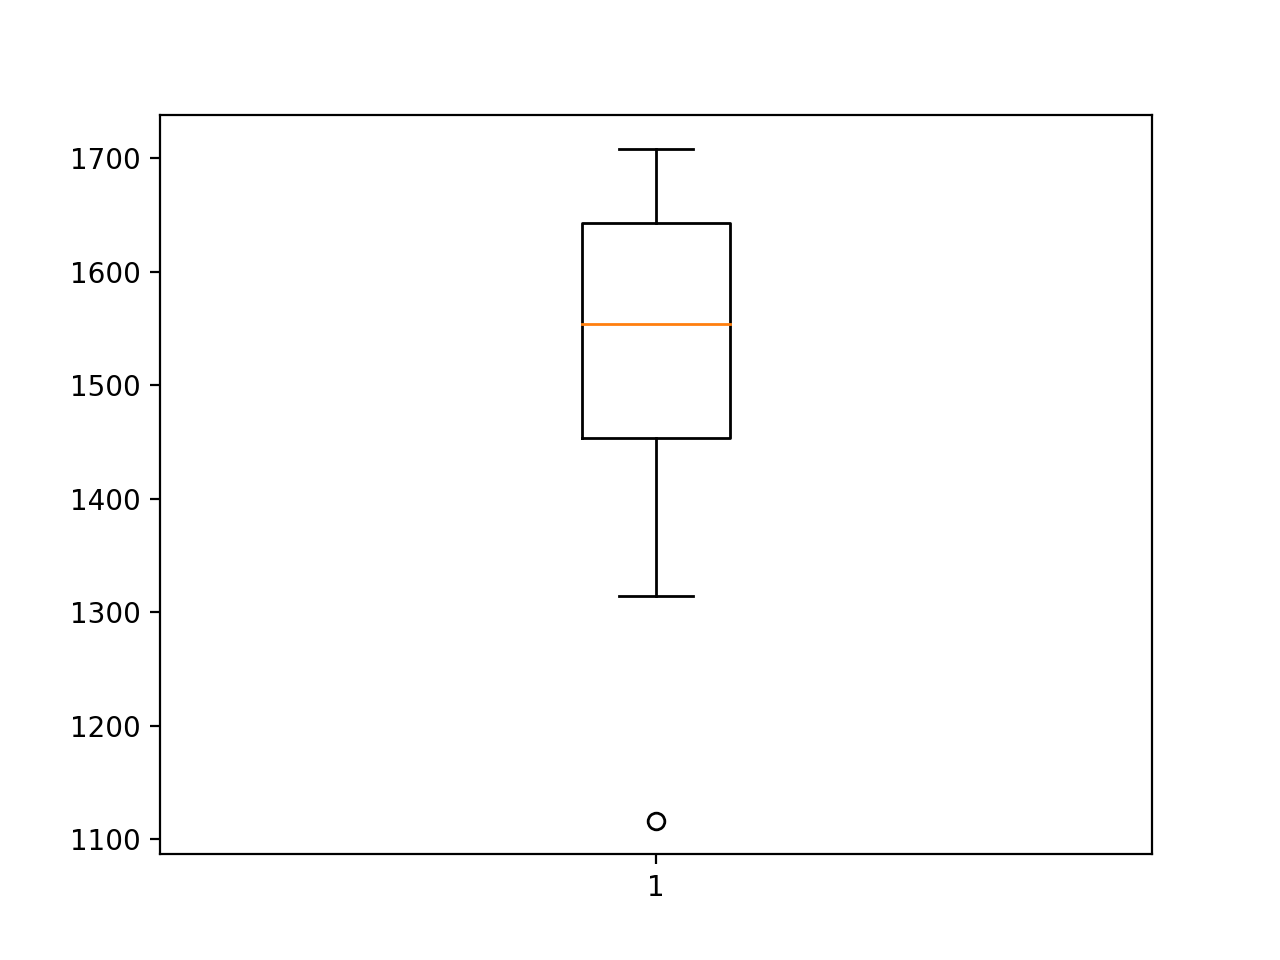 Box and Whisker Plot of Multilayer Perceptron RMSE Forecasting Car Sales